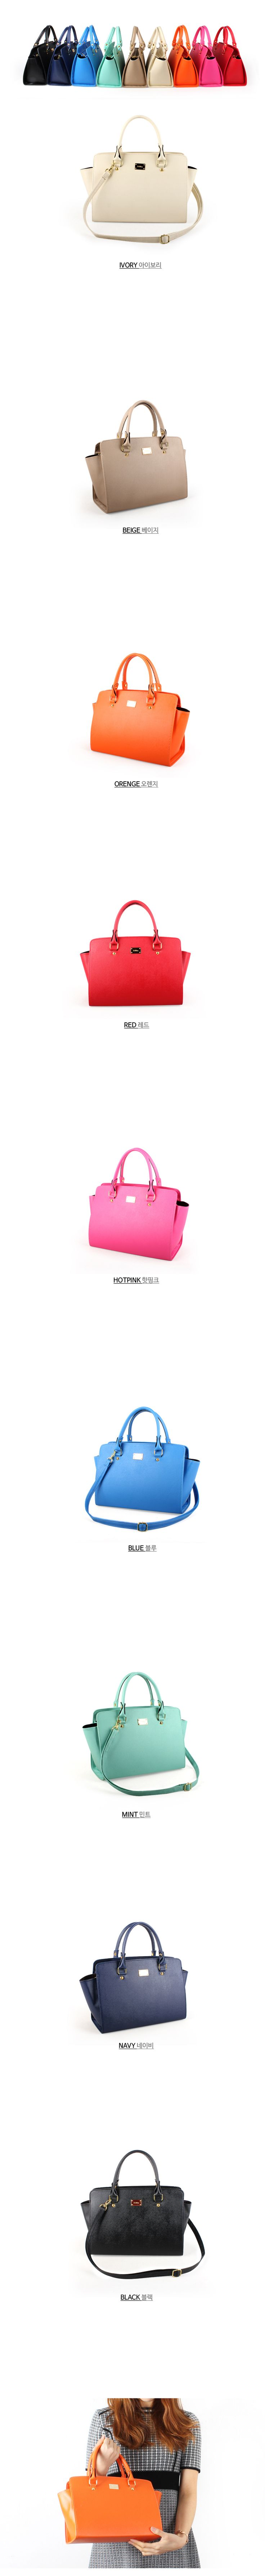 K-Styleme Tote| Korea Fashion, Cute Bag, Korean Accessories-Free International Shipping on orders over $150